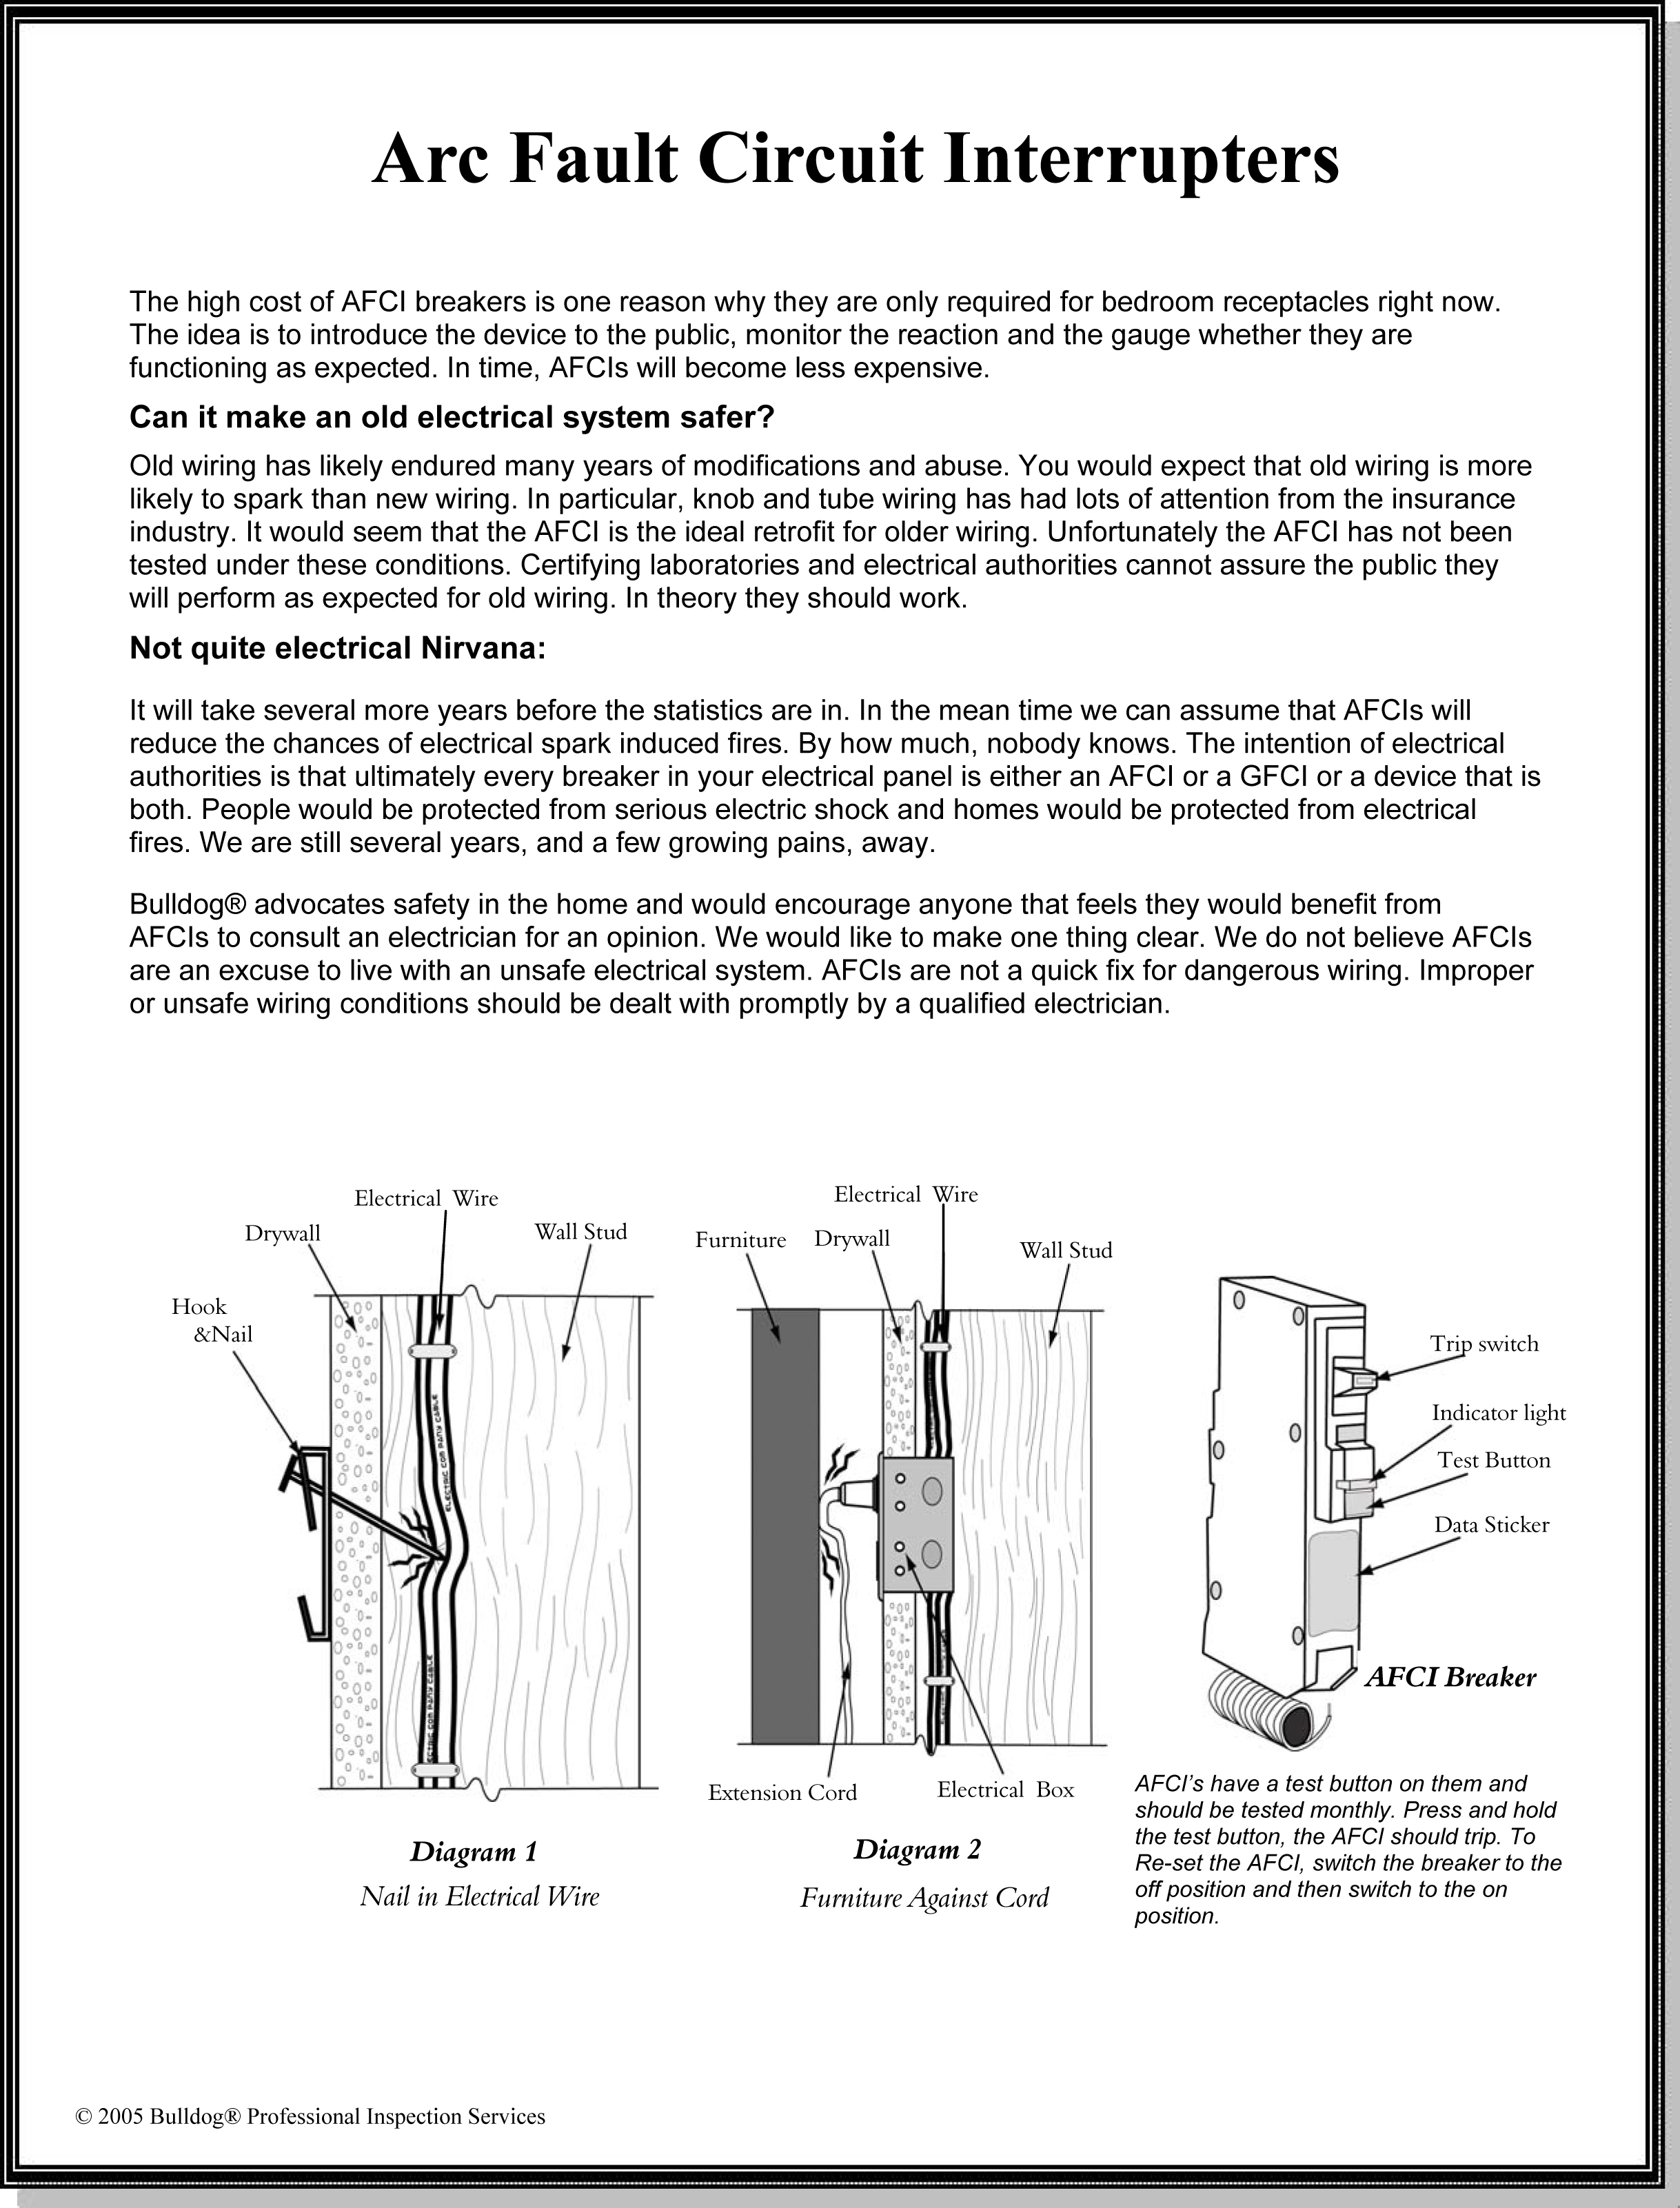 Arc Fault Circuit Interrupter Installation Afci Breaker Wiring Diagram